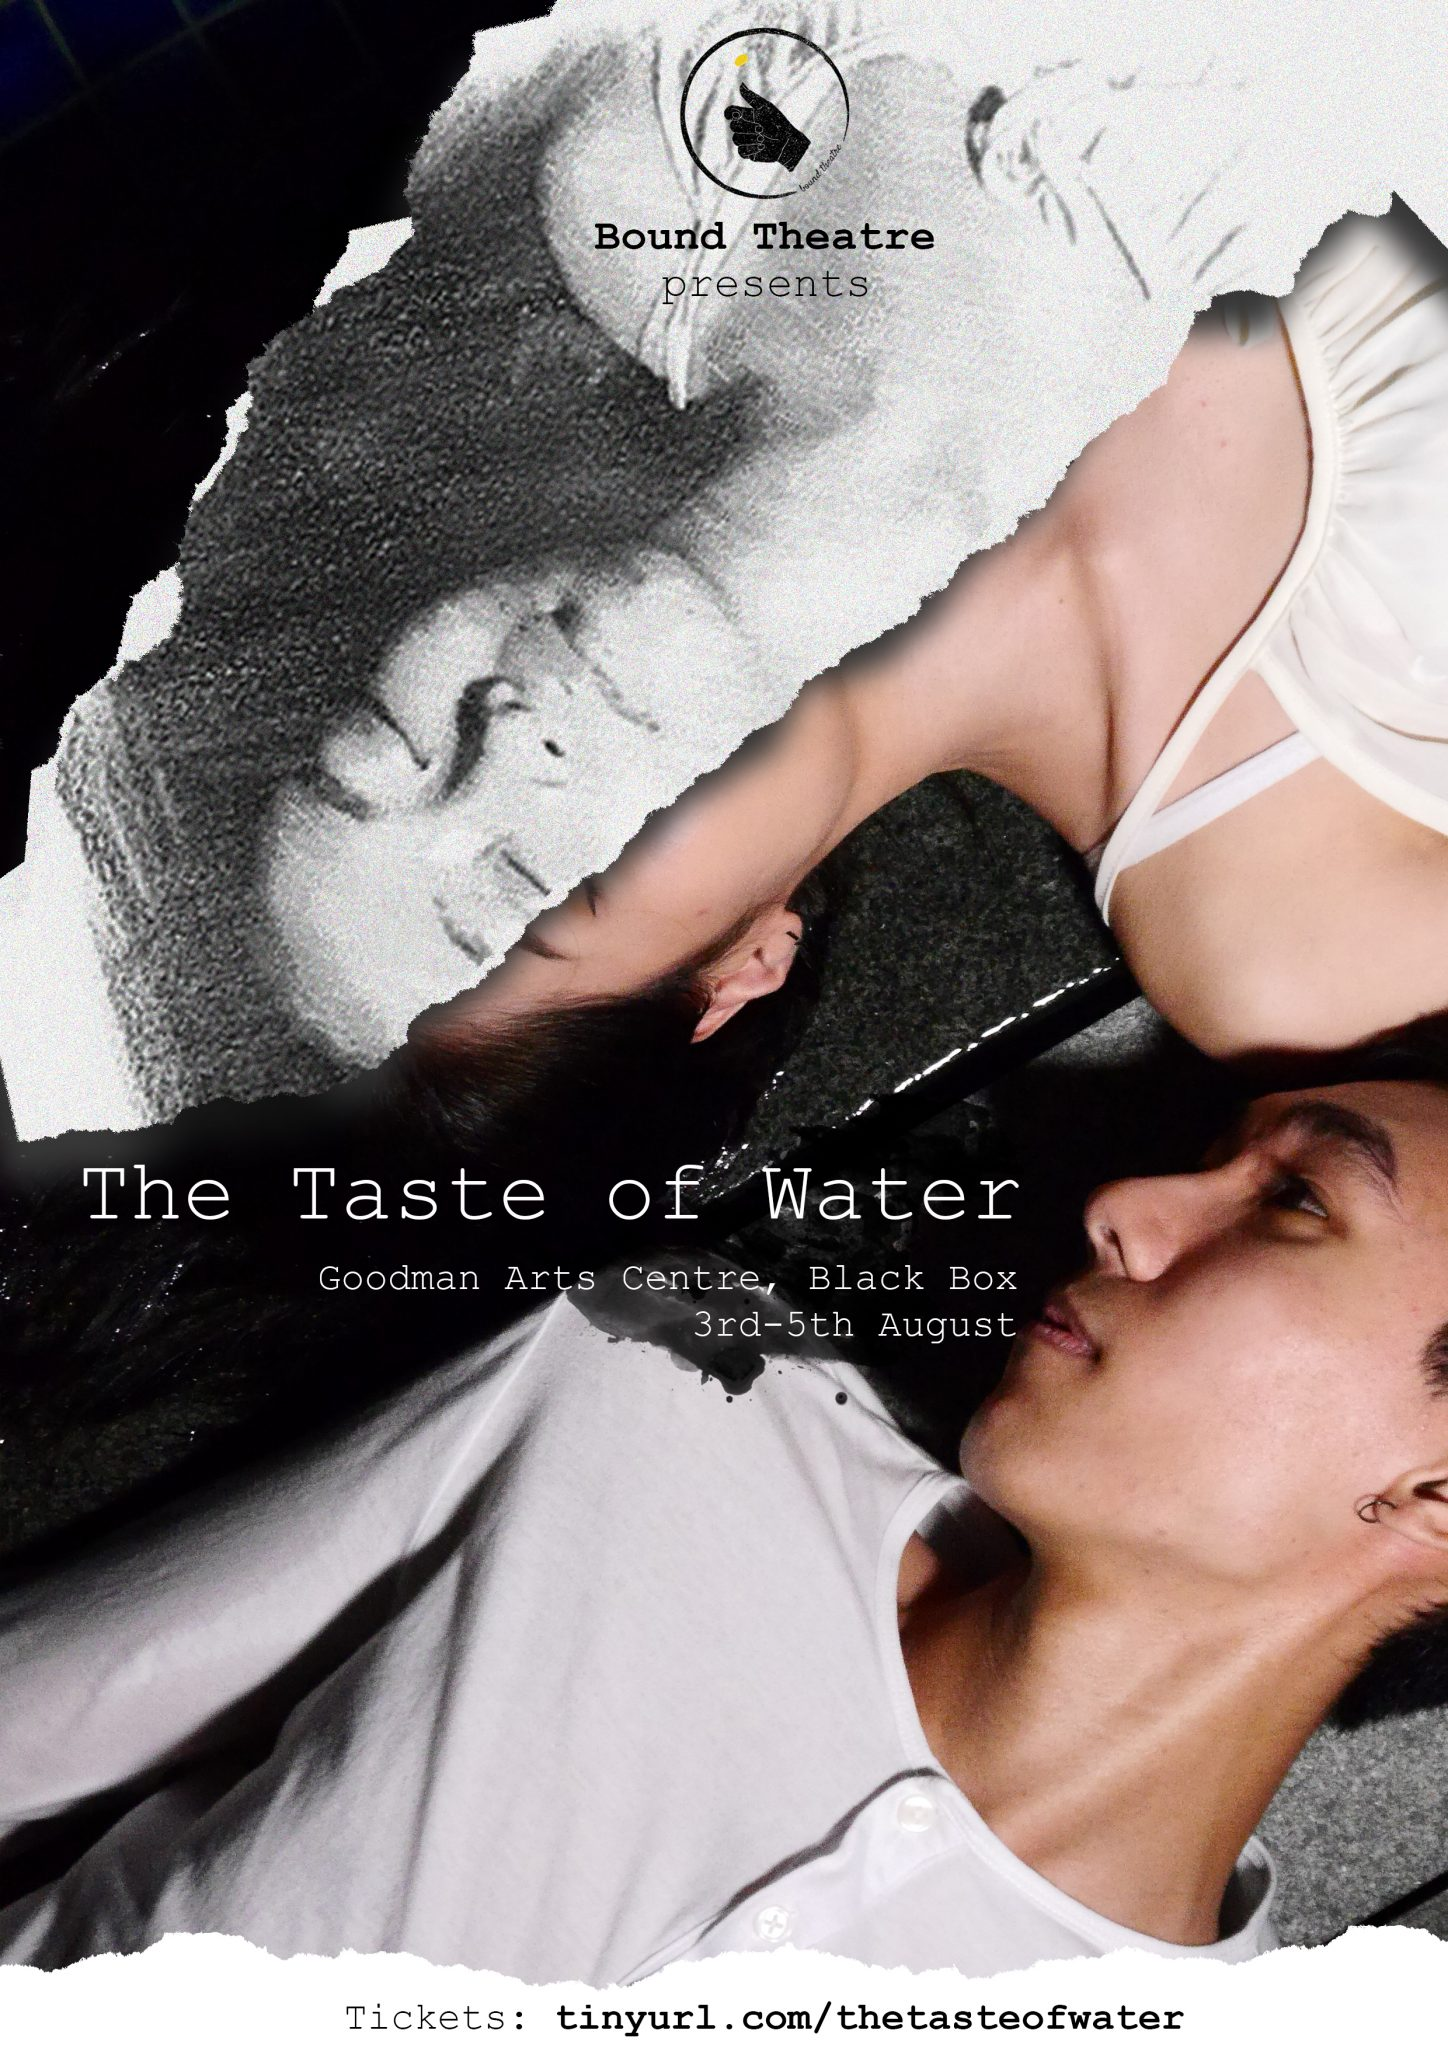 Bound Theatre: The Taste of Water